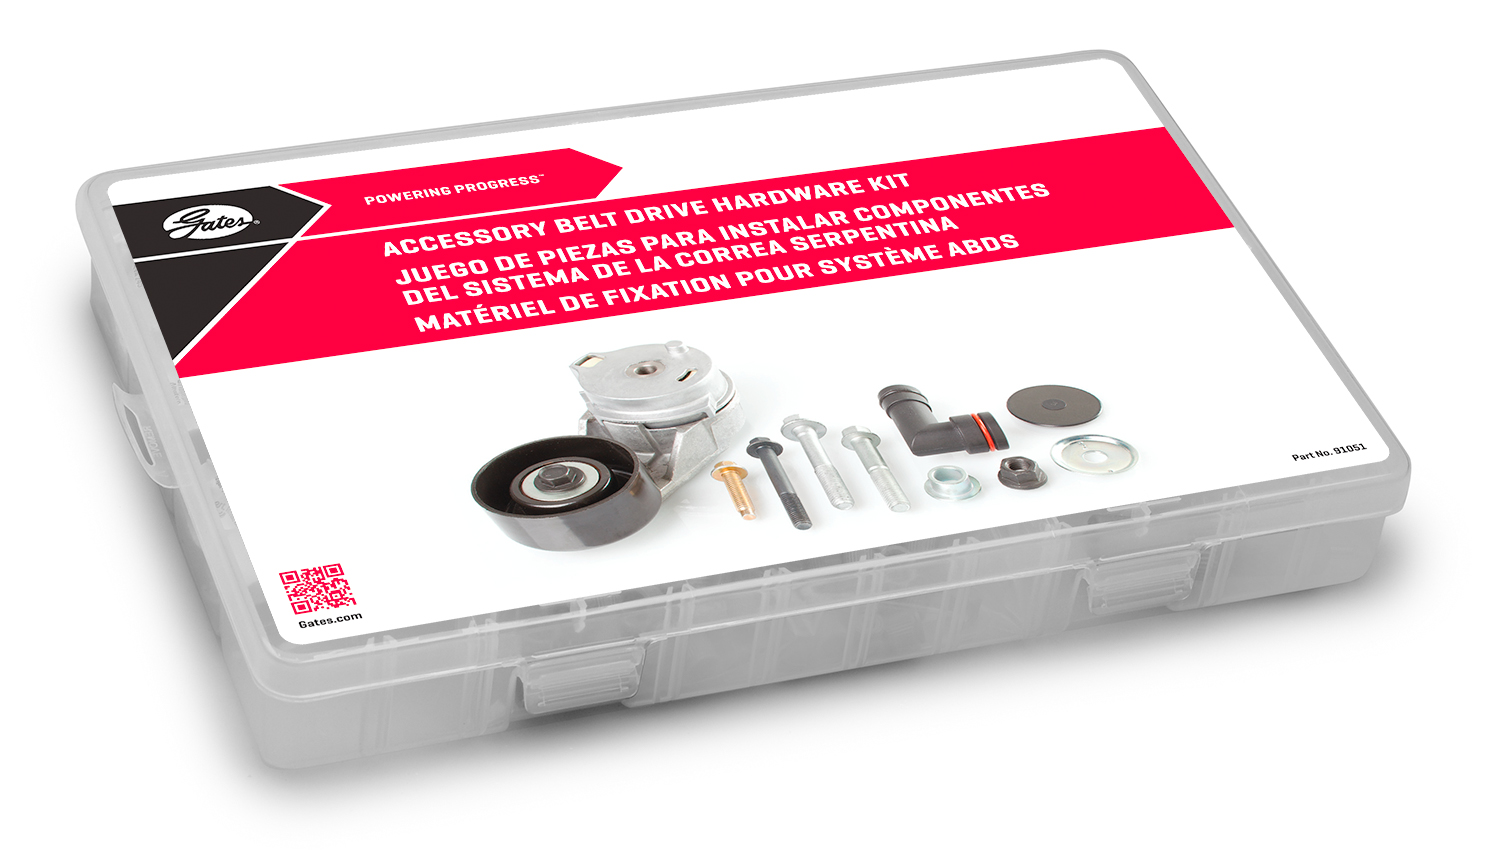 Accessory Drive Hardware Kit